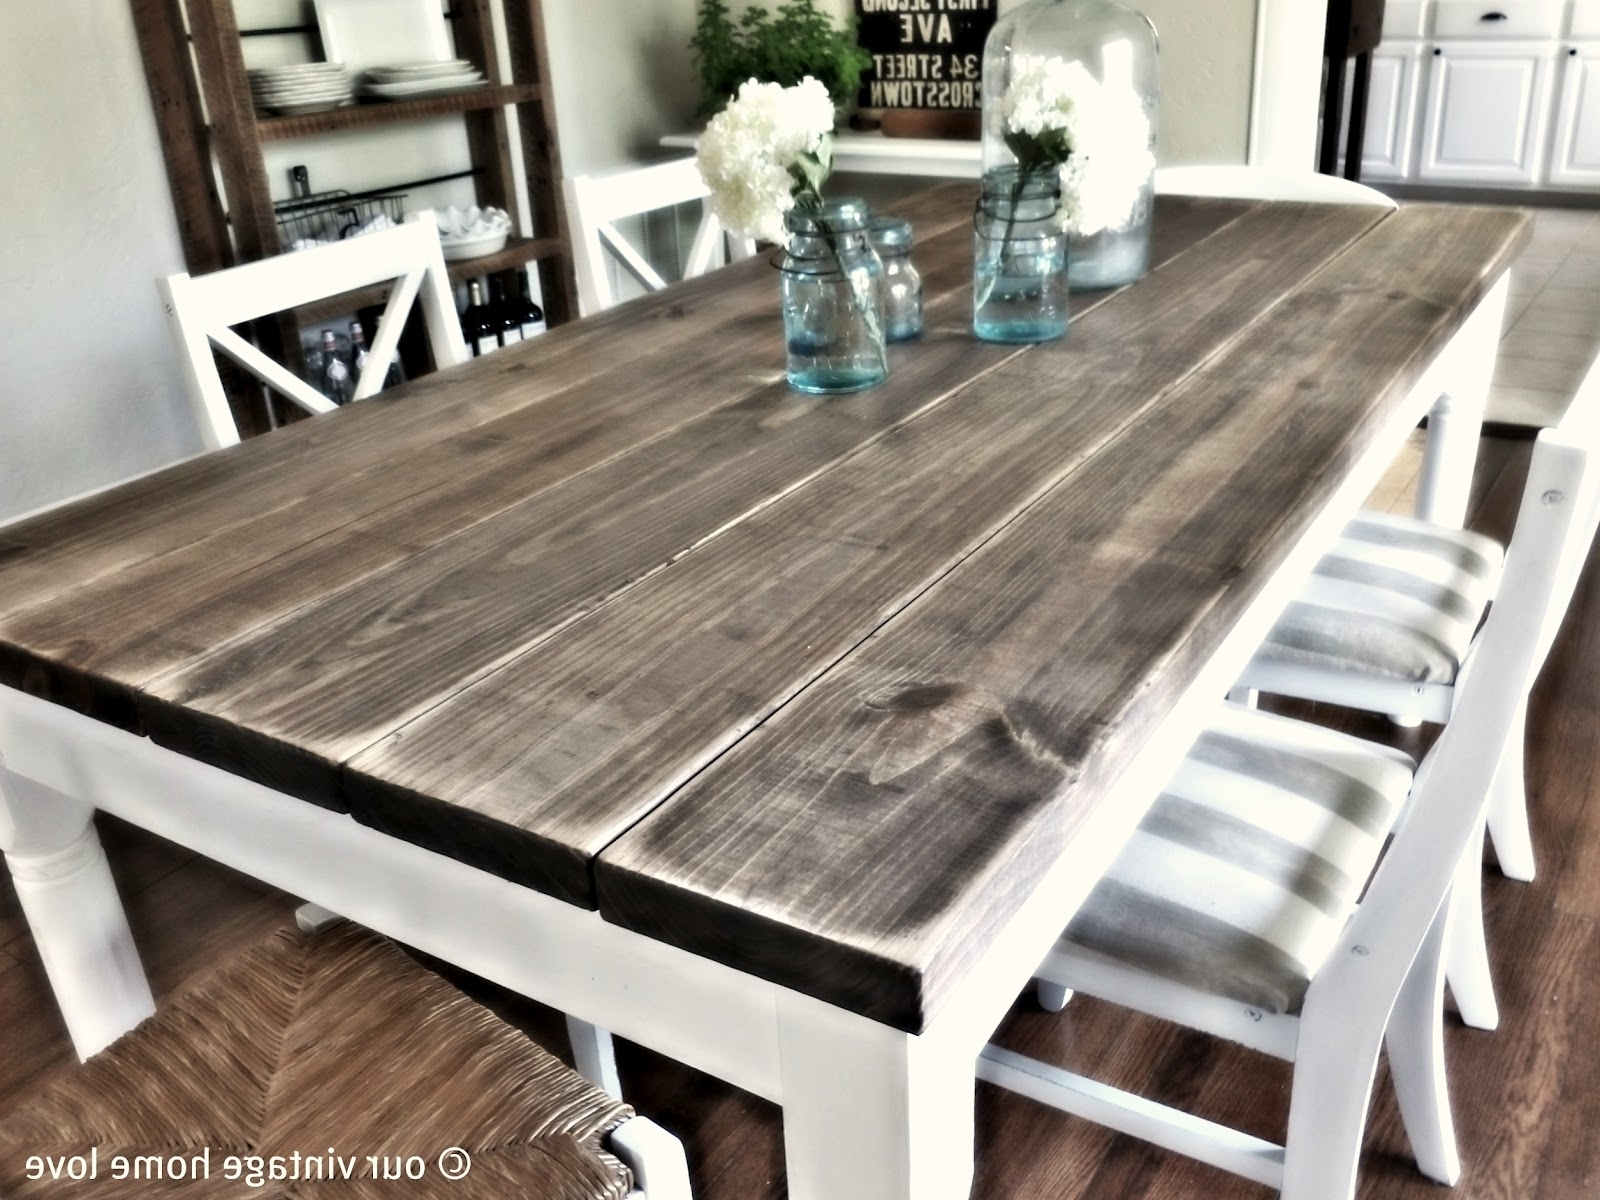 Popular Vintage Home Love: Dining Room Table Tutorial Intended For Dining Room Tables (View 22 of 25)